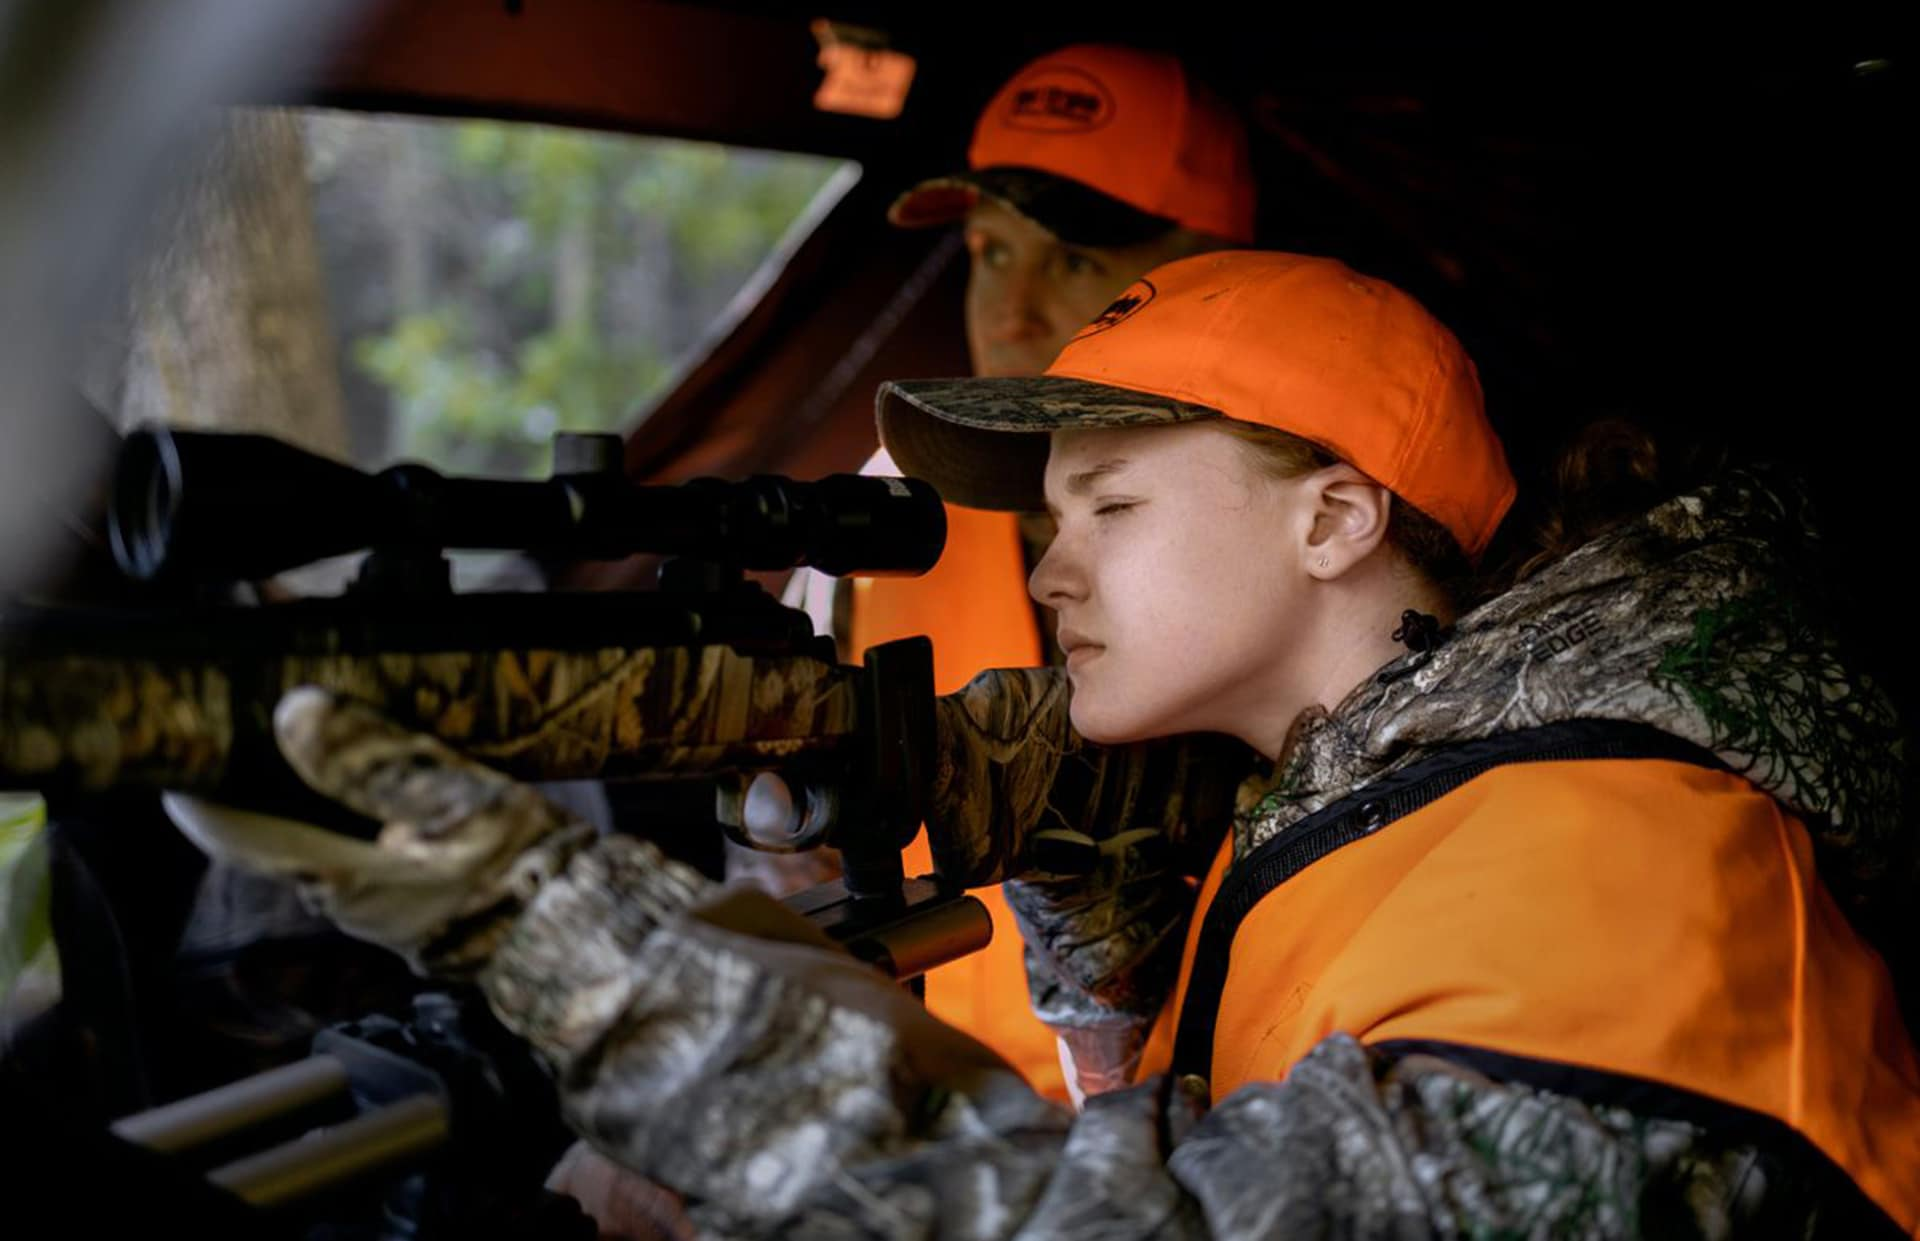 West Virginia provides great hunting opportunities for youth, families